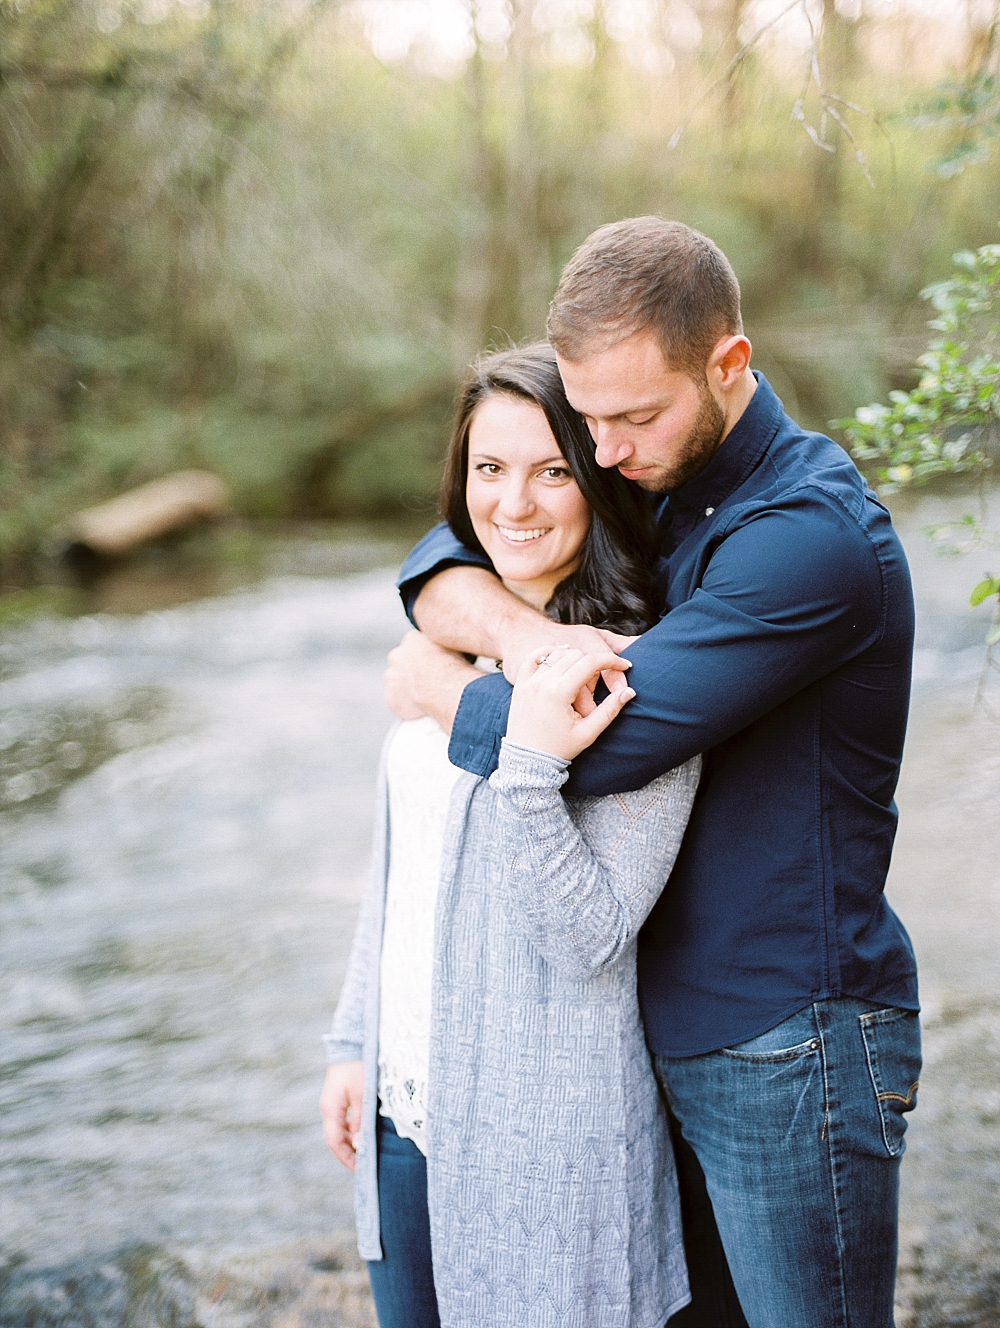 JuicebeatsPhotography_KnoxvilleEngagement_Kristina&Ben_0059.jpg